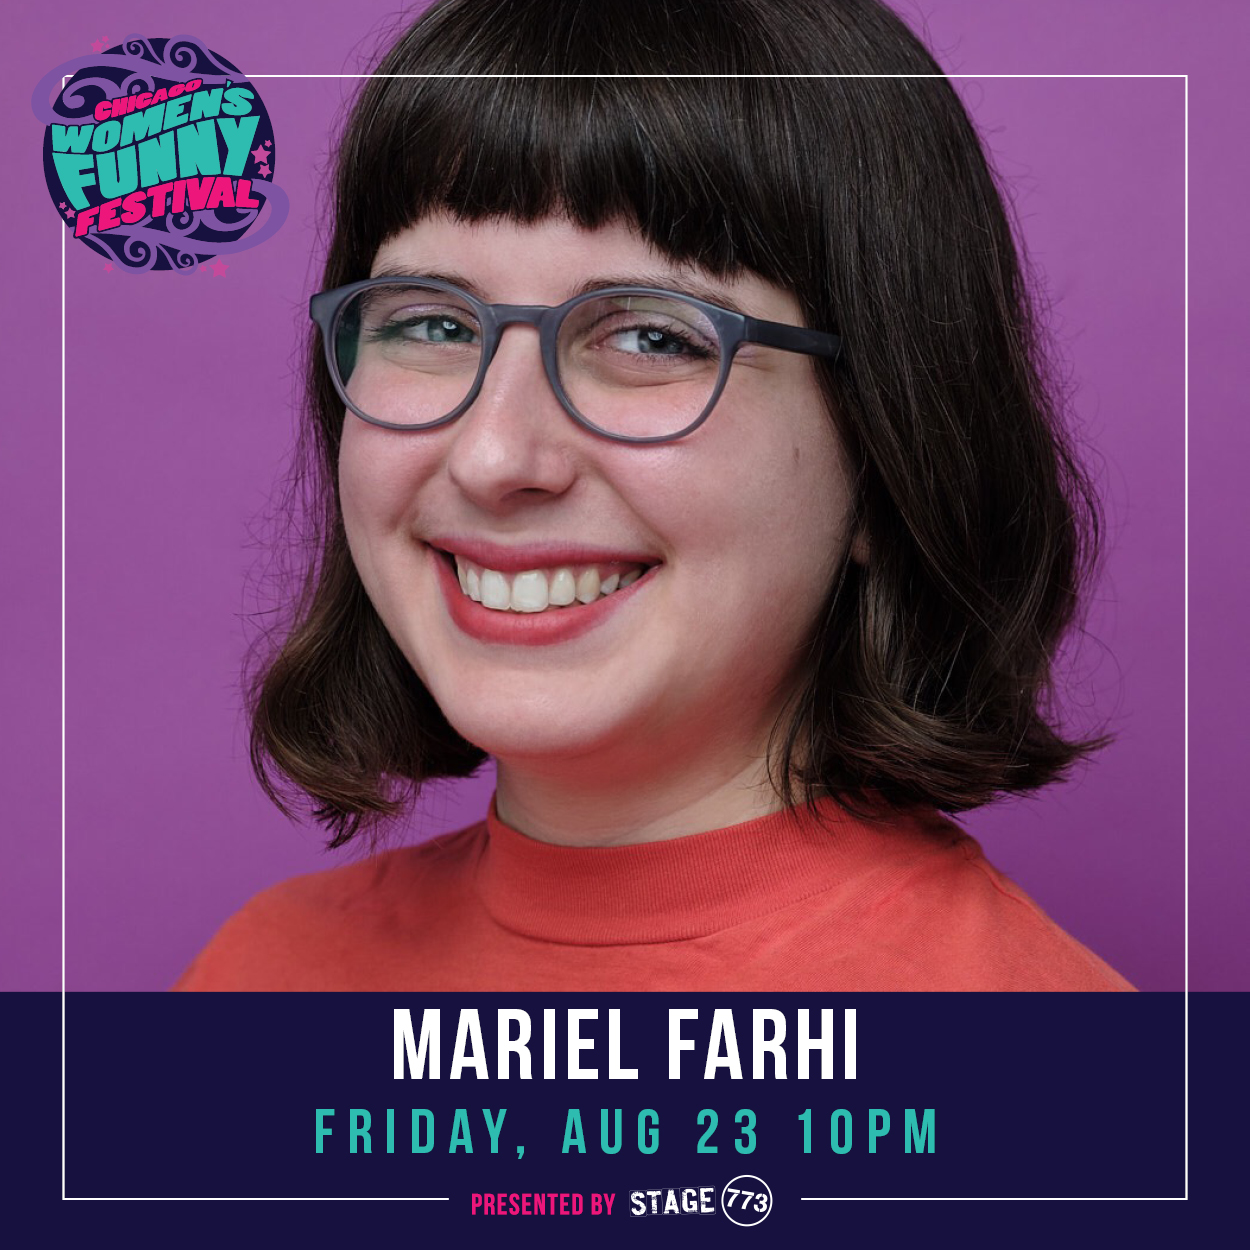 MarielFarhi_Friday_10PM_CWFF2019.jpg